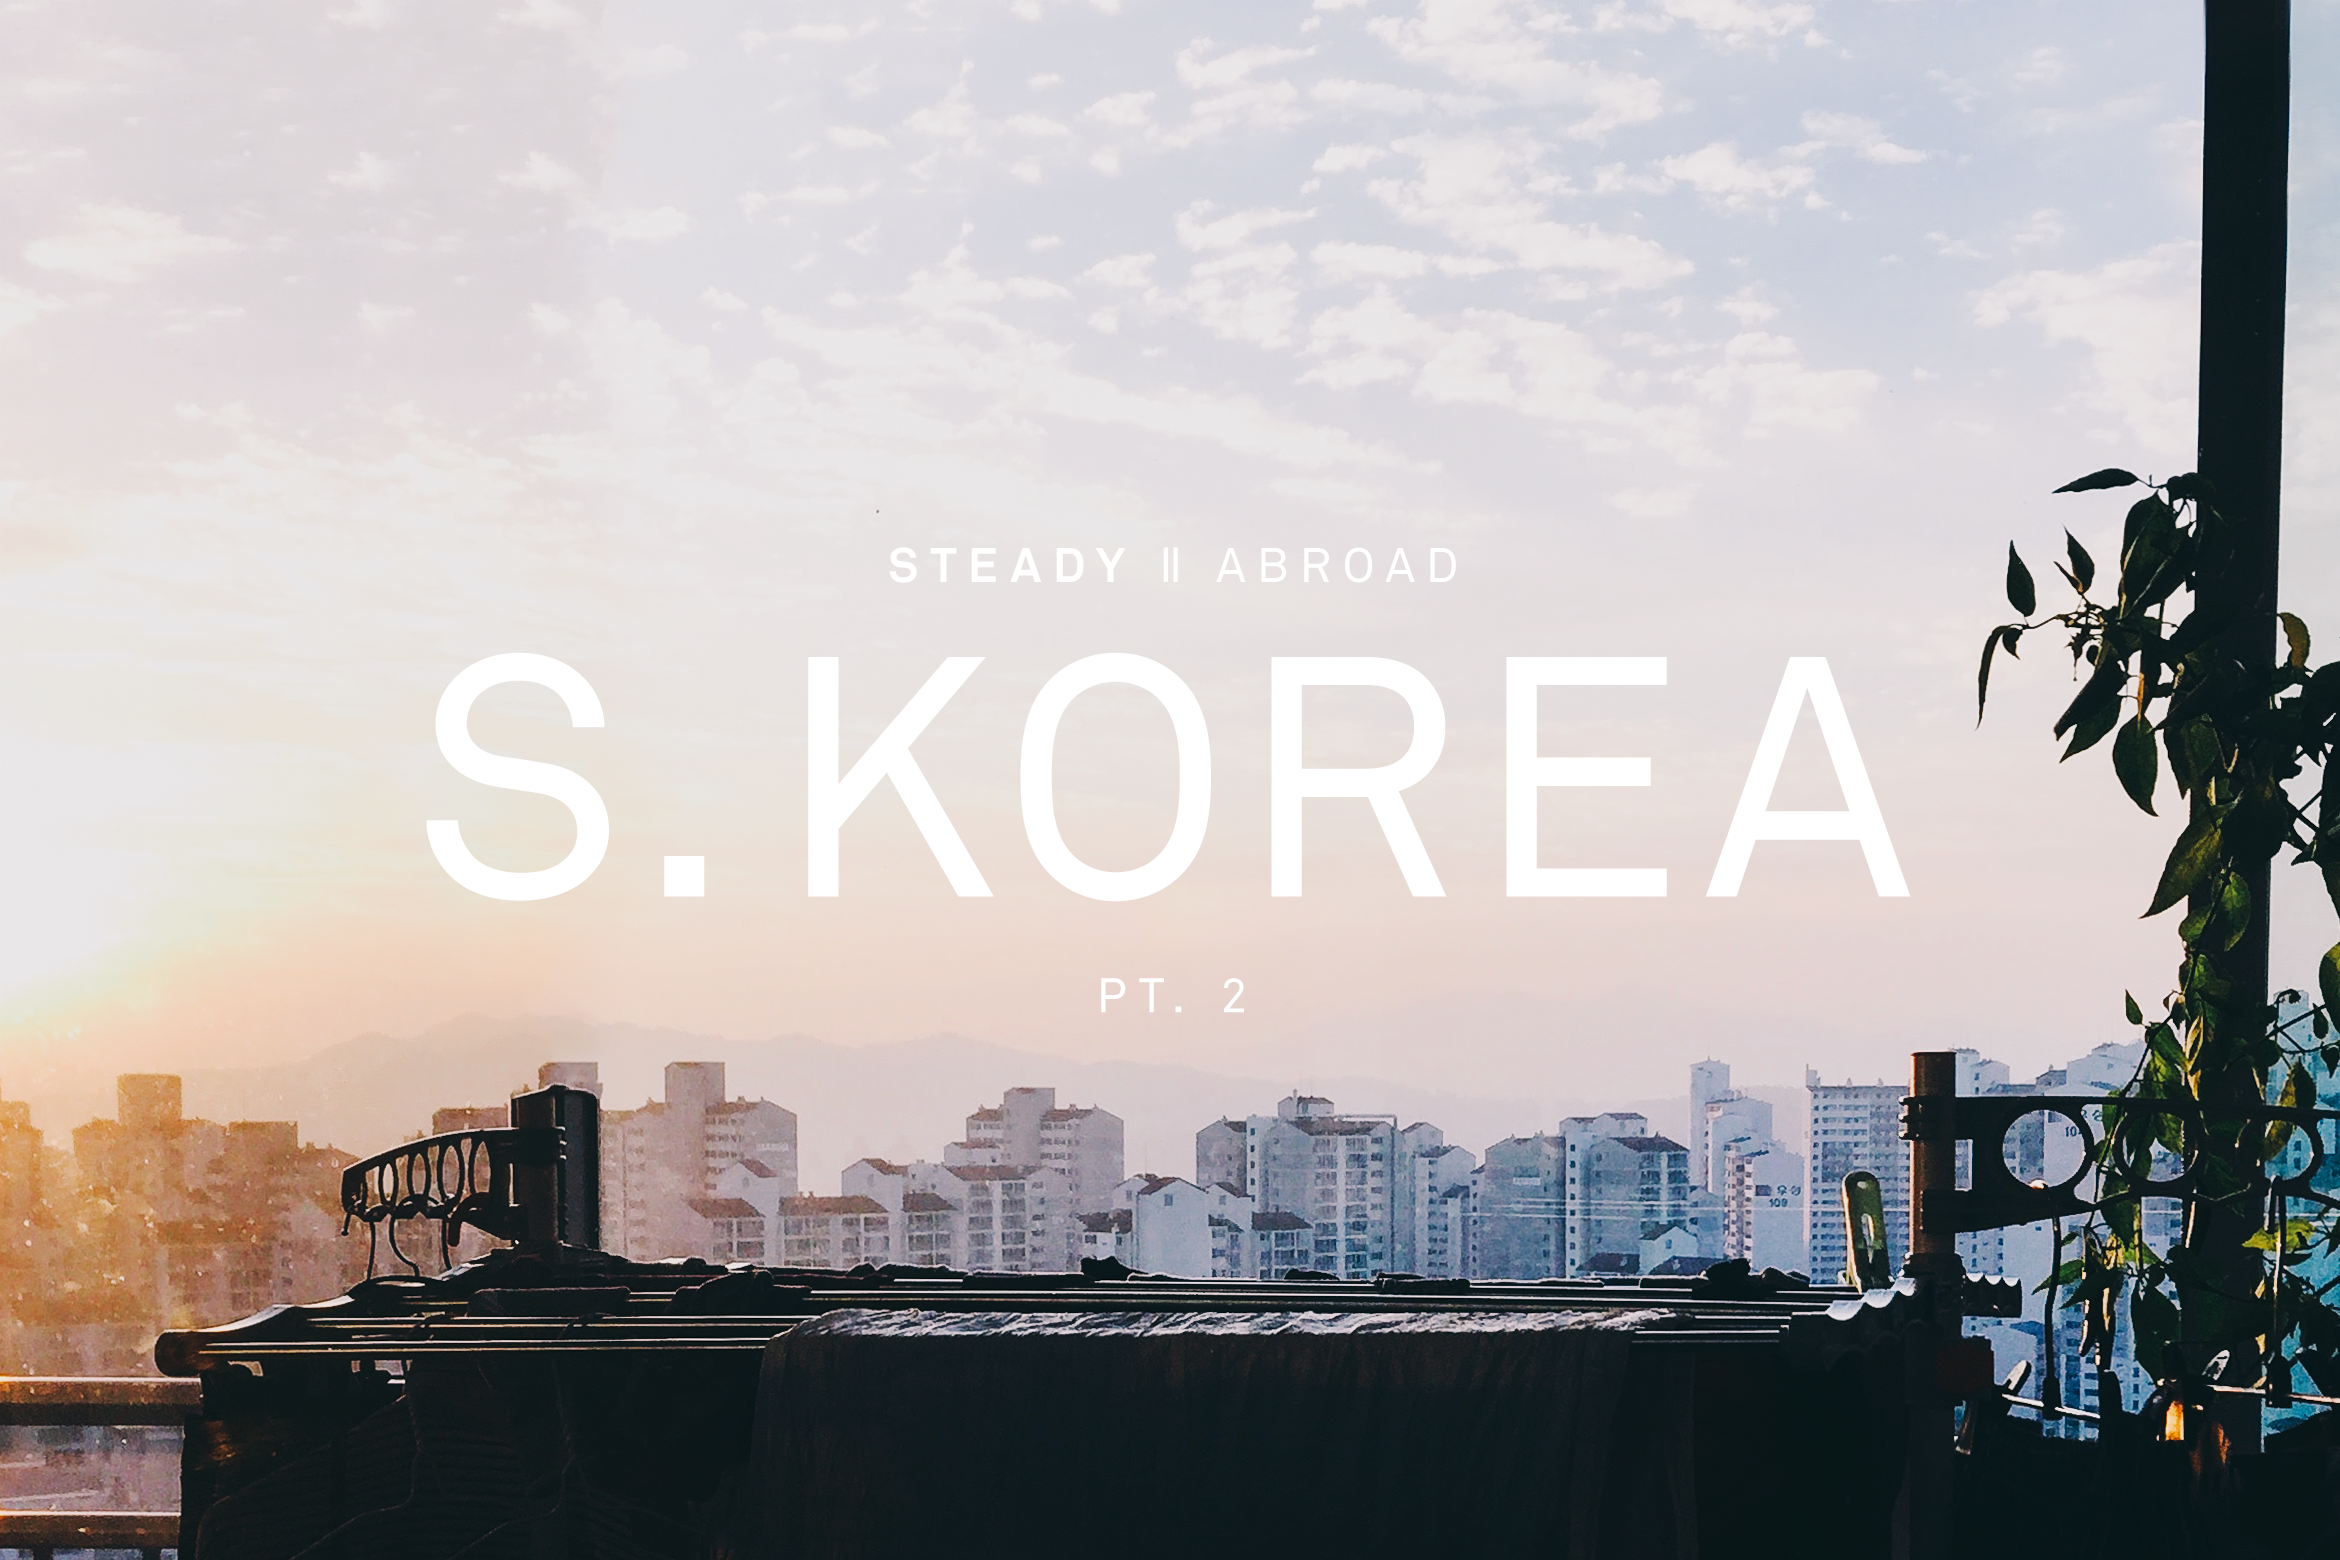 STEADY ABROAD: SOUTH KOREA PT.2